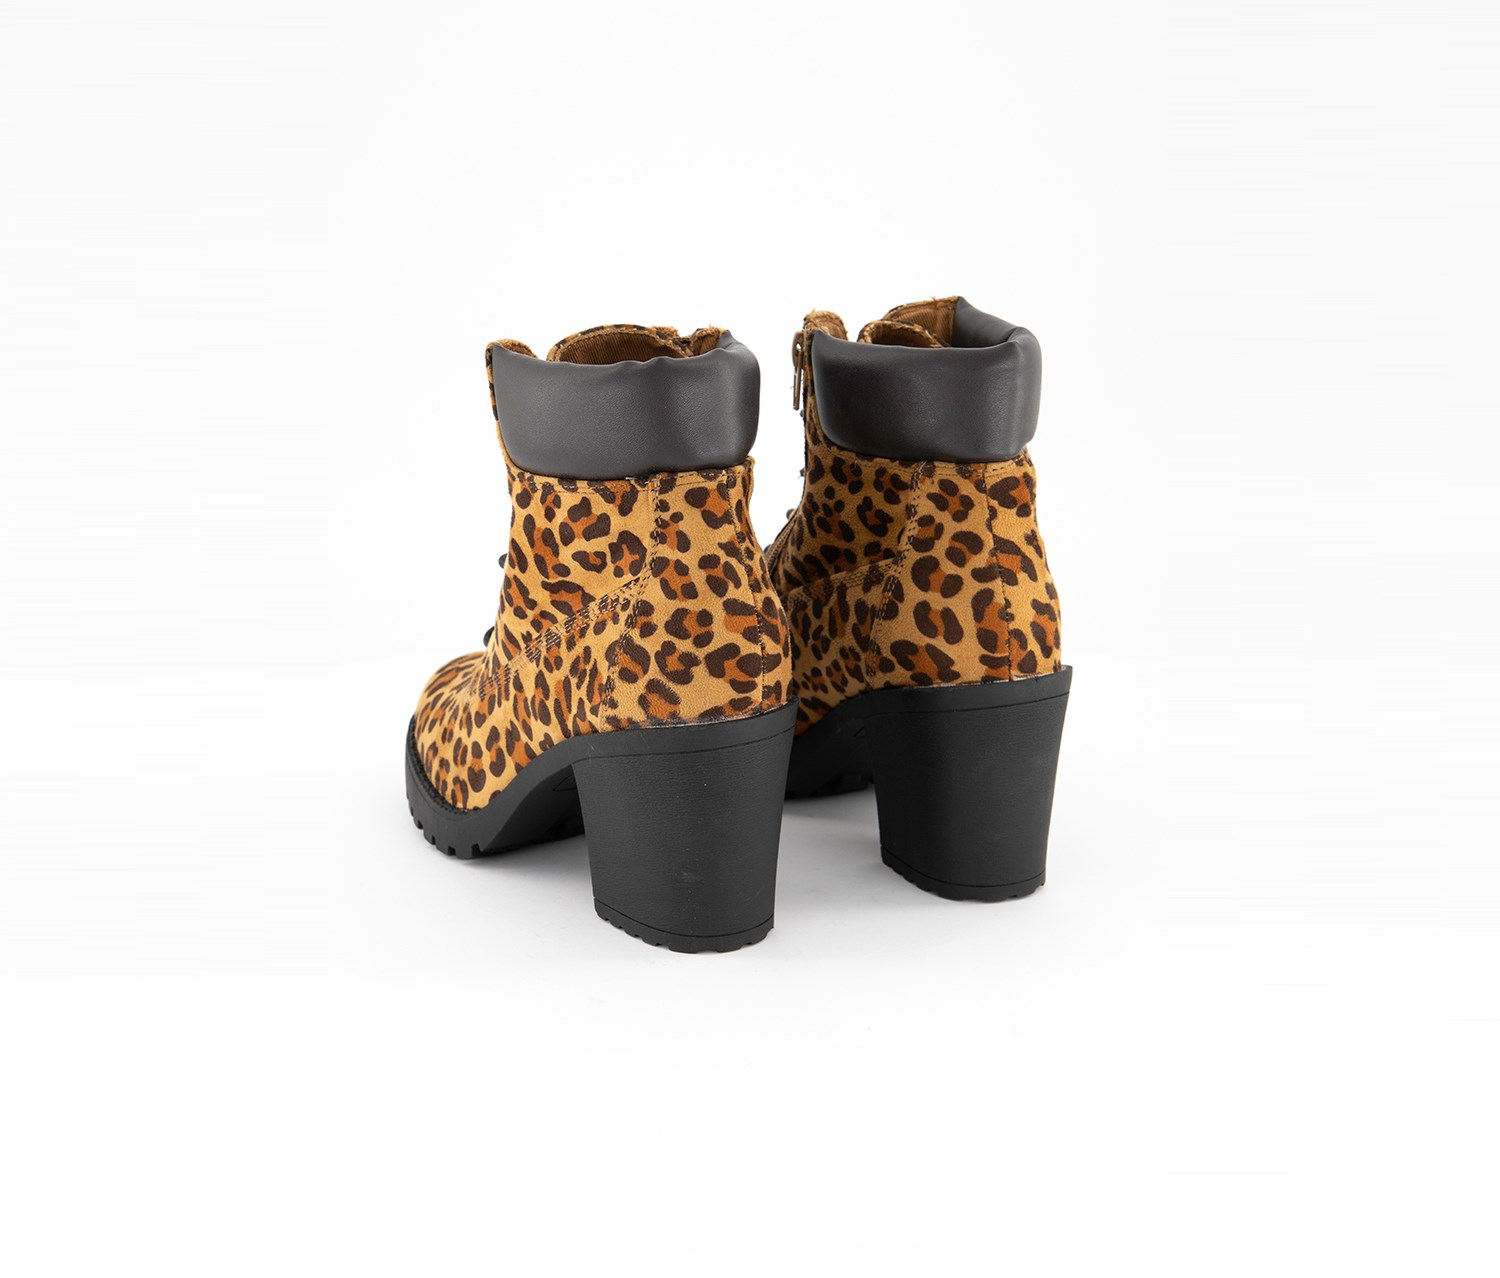 BCBGeneration Wedge Ankle Boots Leopard Animal Size 6 1//2